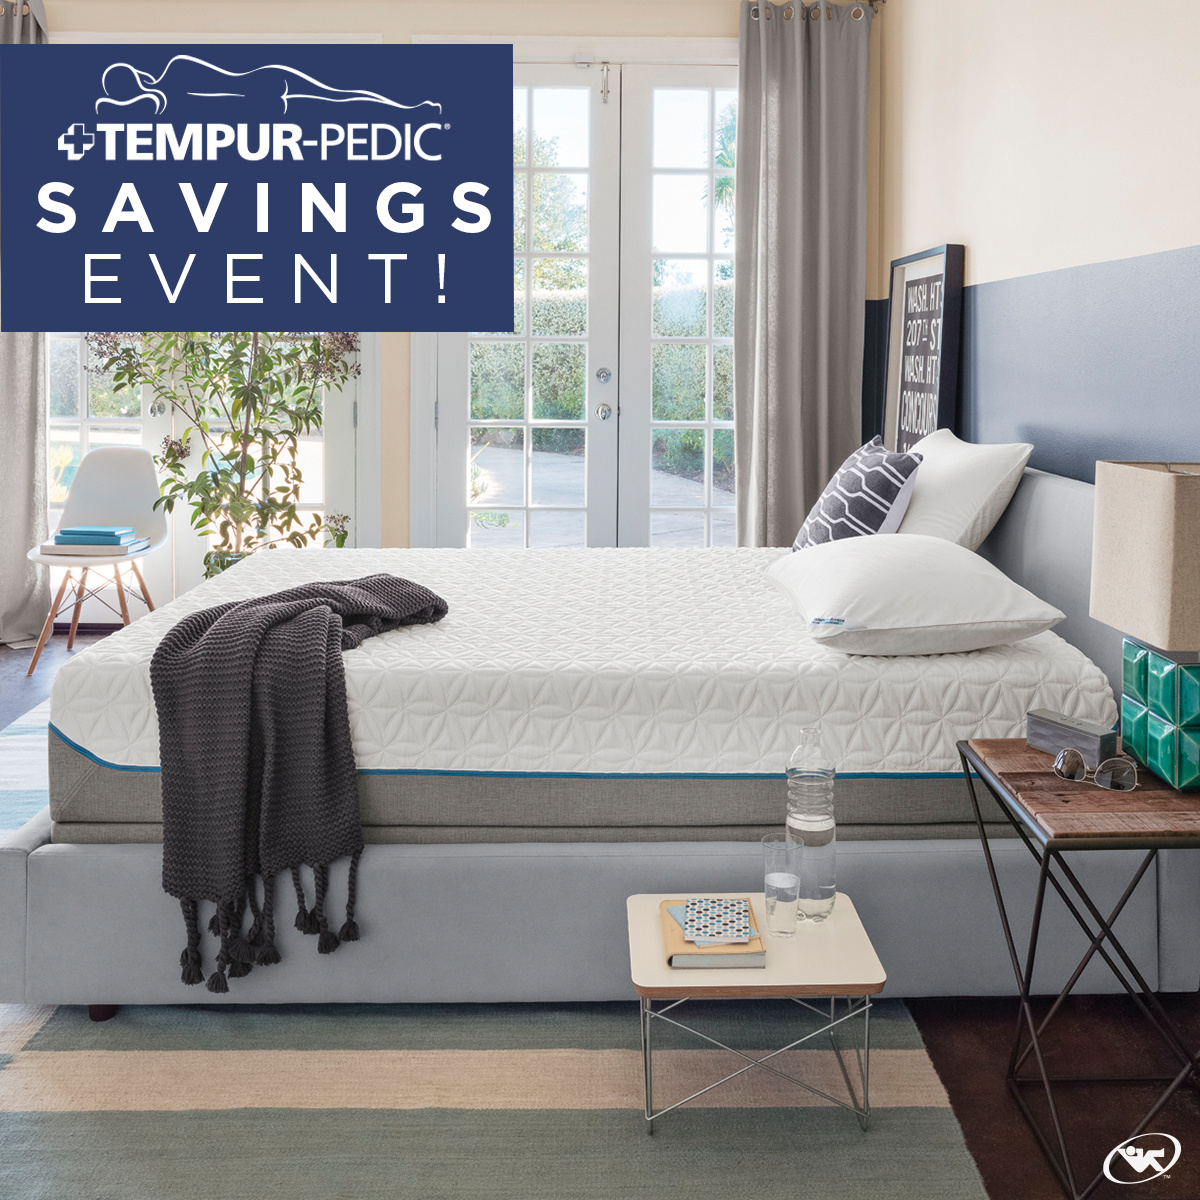 Our TempurPedic Savings event is going on now! Save up to